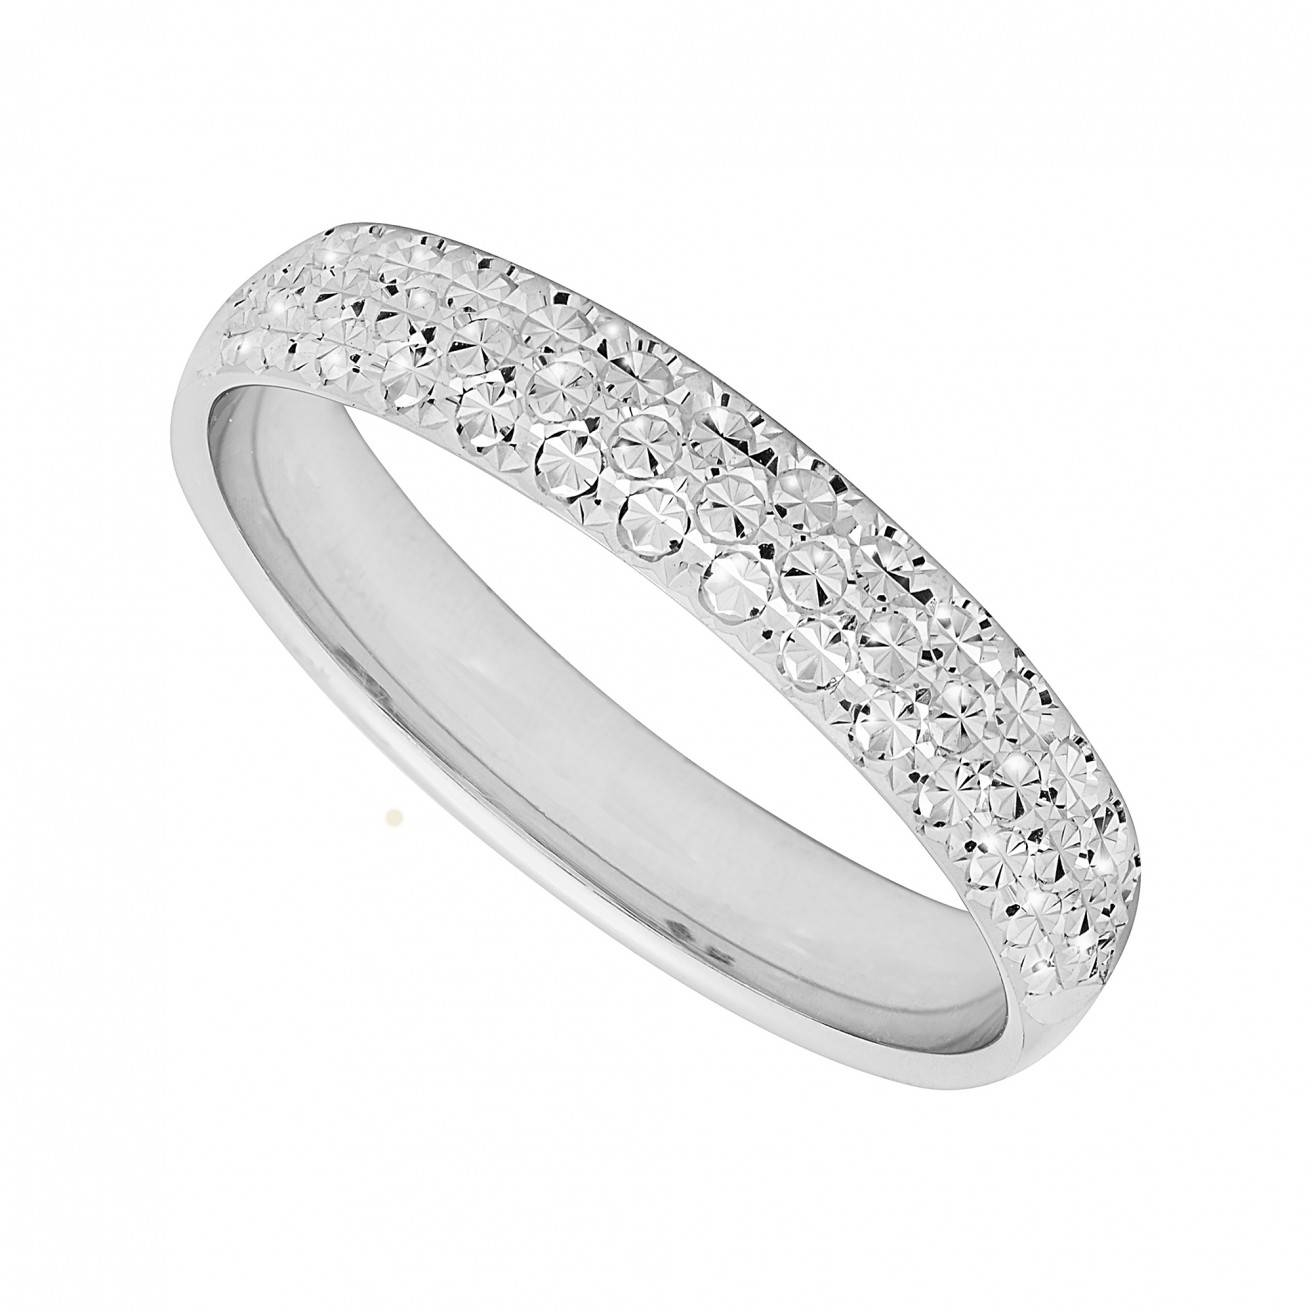 Buy White Gold Wedding Rings Online – Fraser Hart Throughout Wedding Rings With Diamond Band (View 6 of 15)